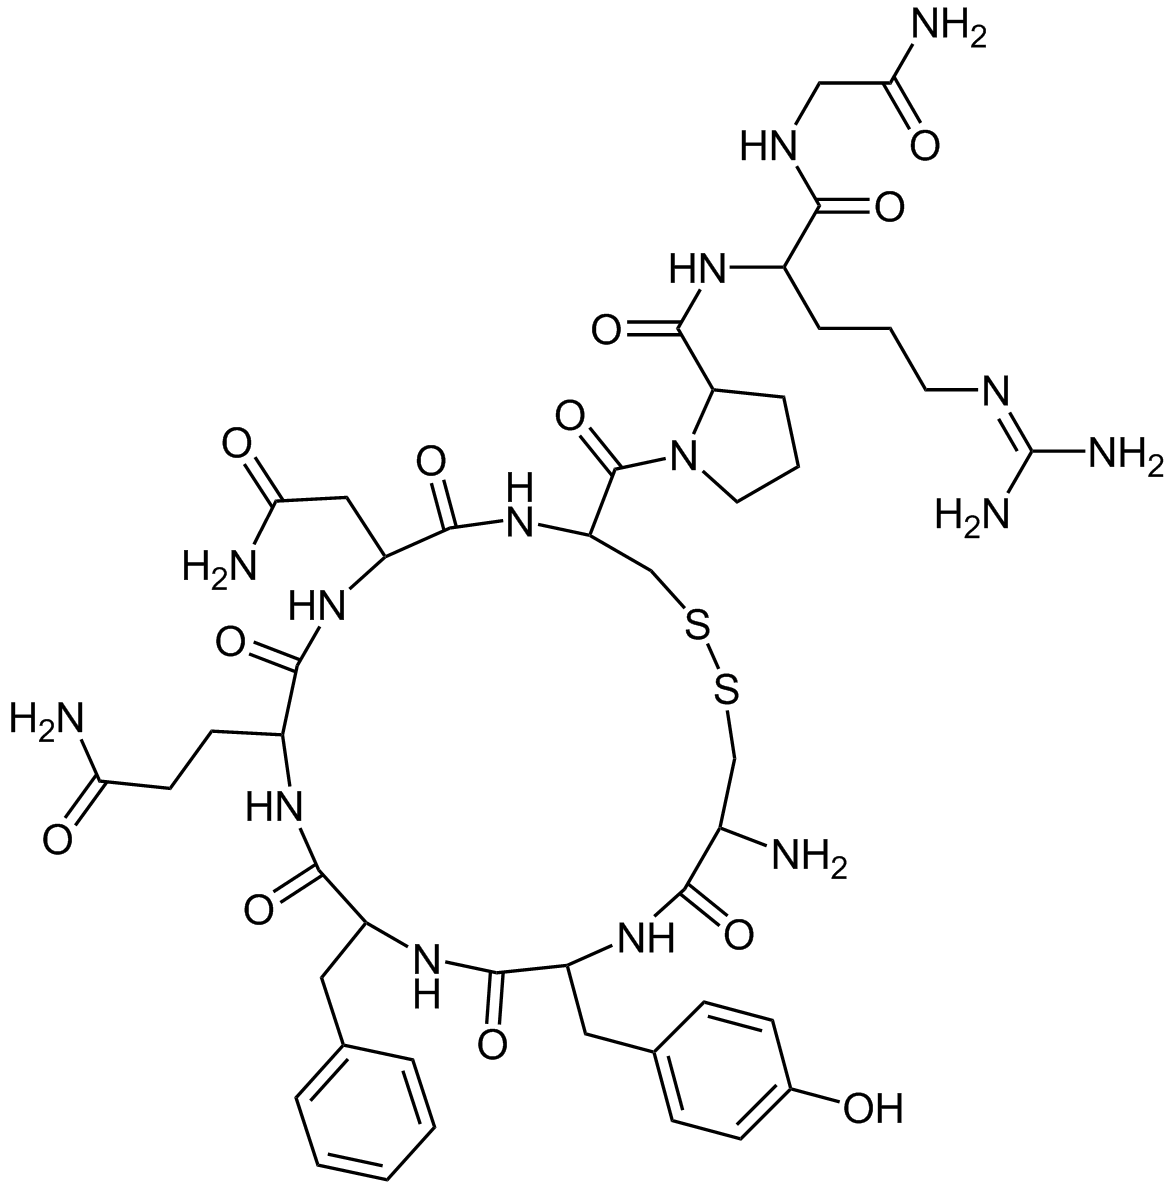 Vasopressine - Chemical formula of Vasopressin - Crazy-Chemist Own work with ChemDraw - Wikimedia Commons